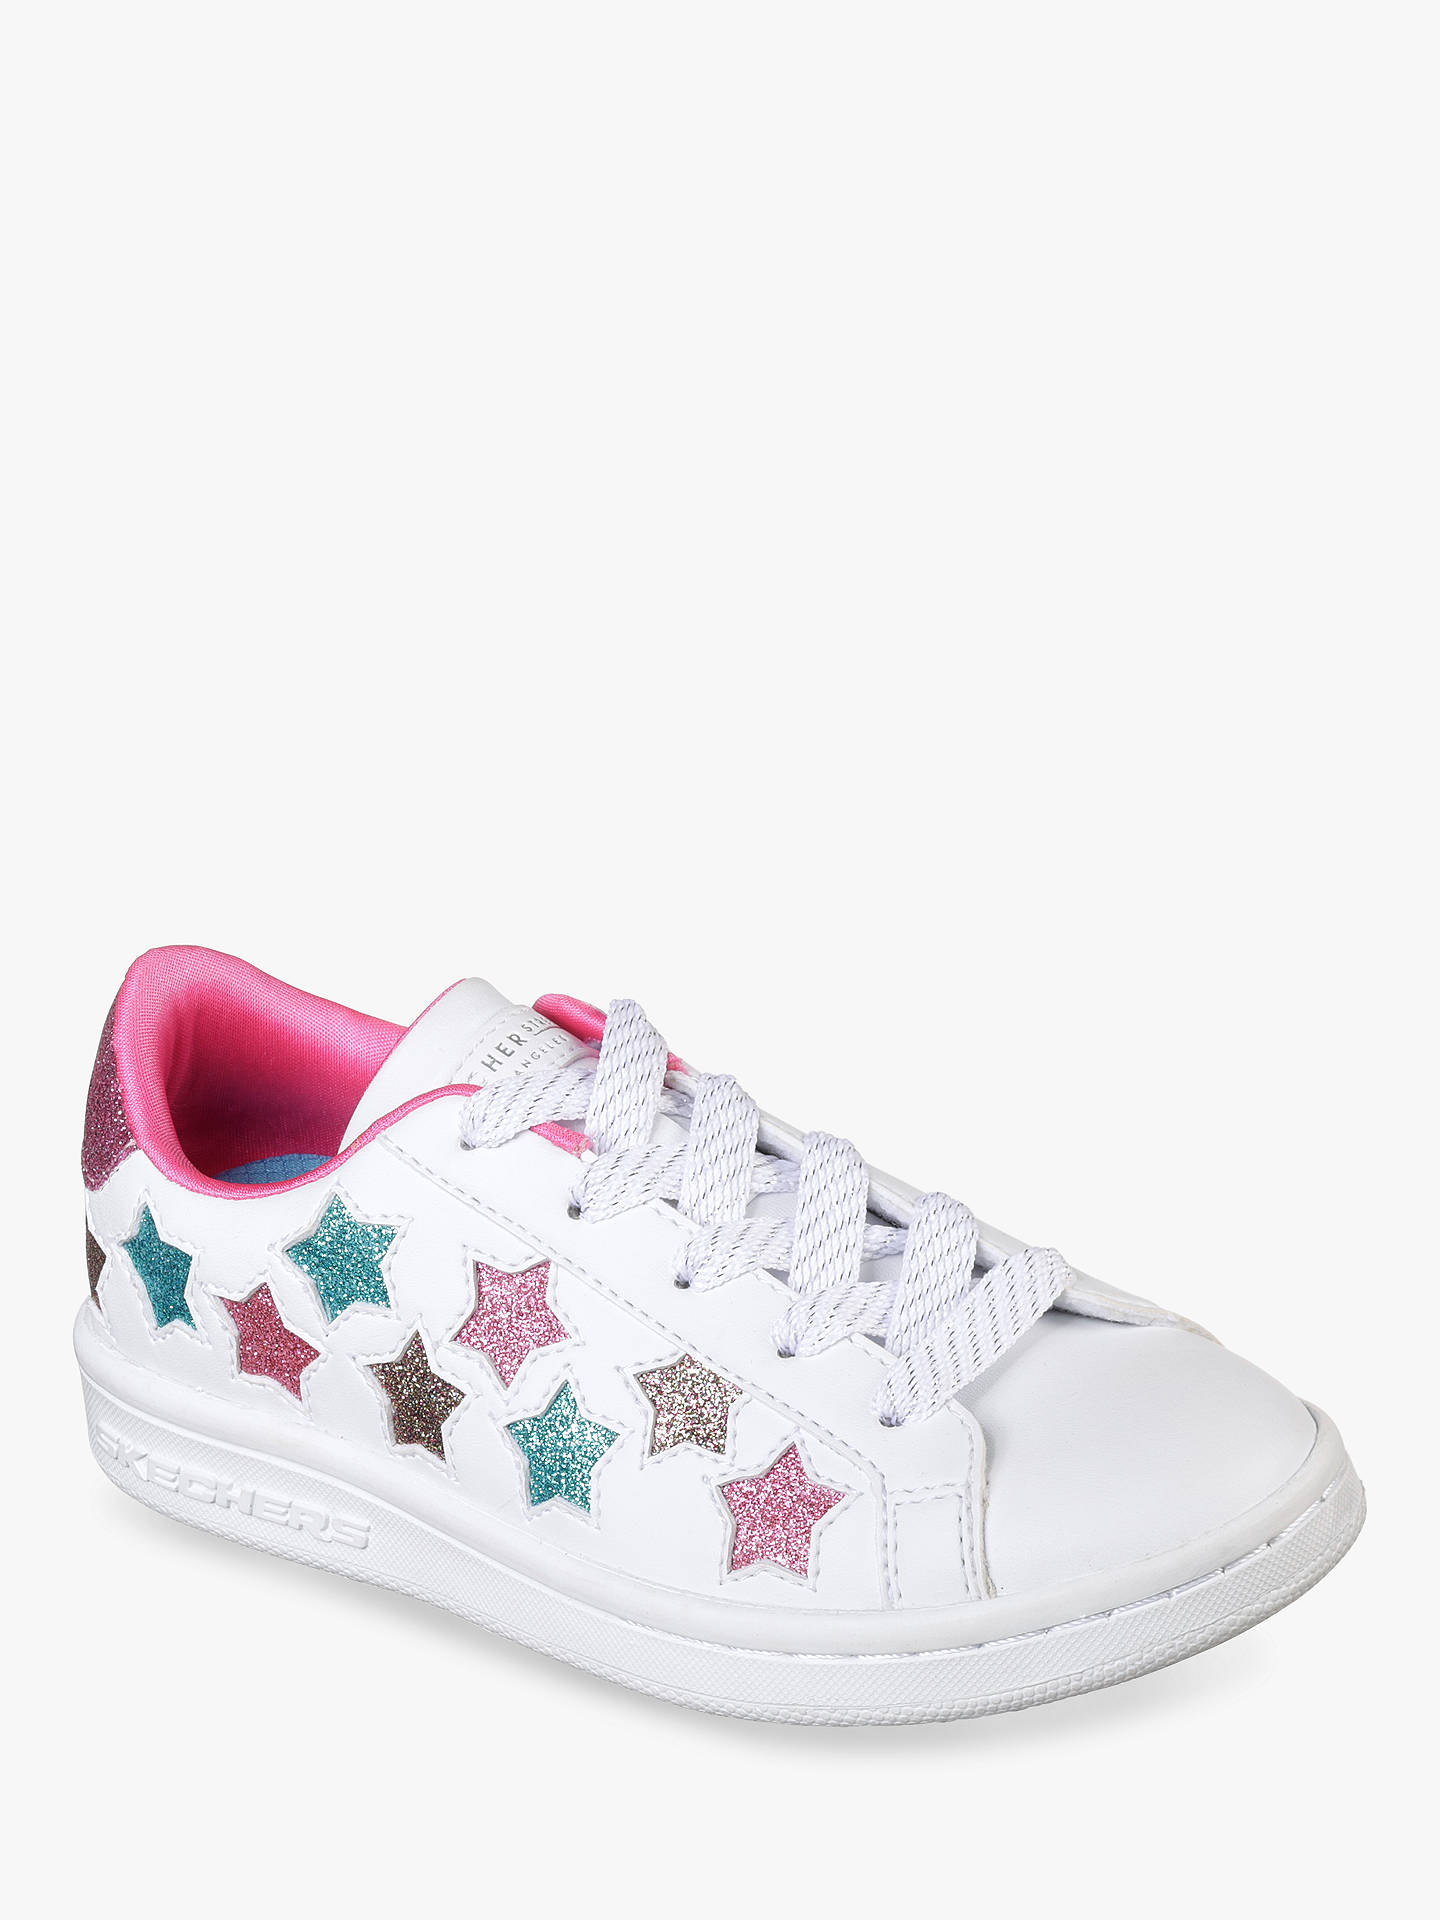 BuySkechers Children's Star Trainers, White, 37 Online at johnlewis.com